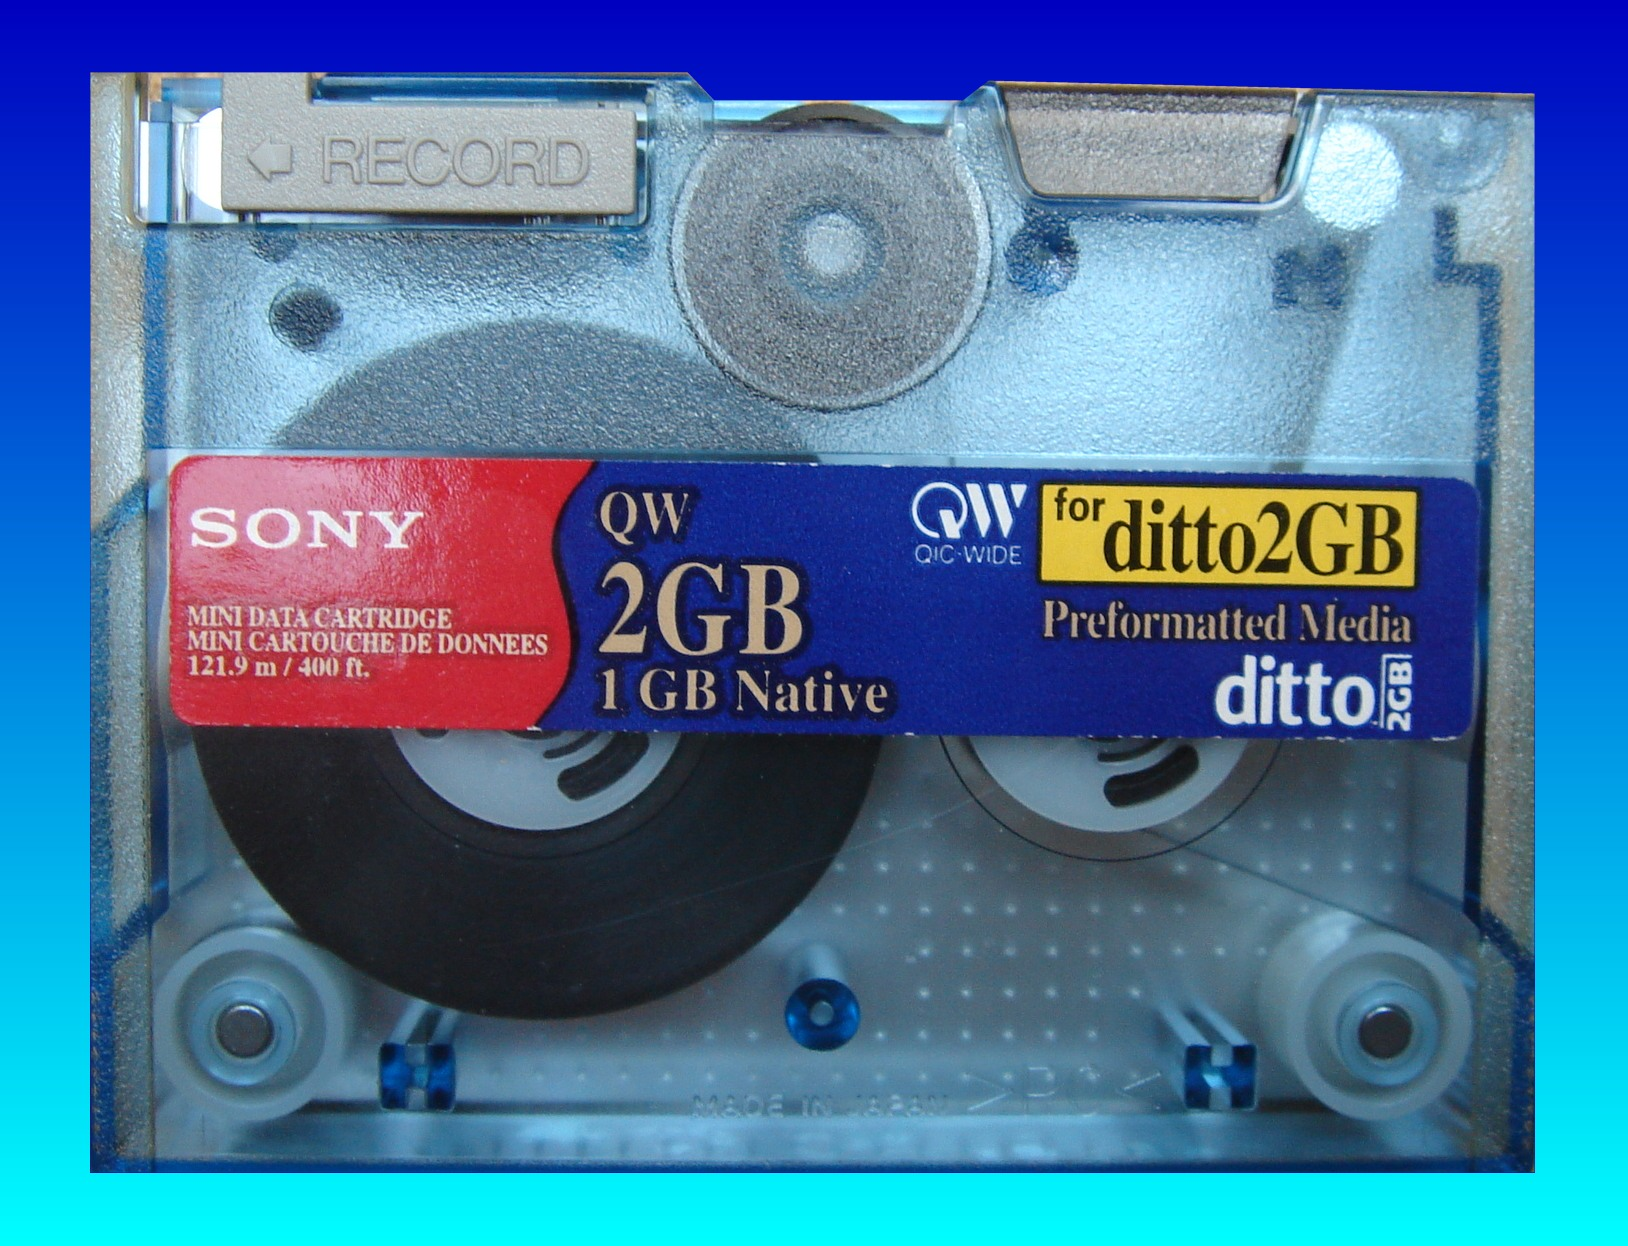 A 2GB ditto cartridge made by Sony that was sent in for files to be extracted to DVD and USB drives.